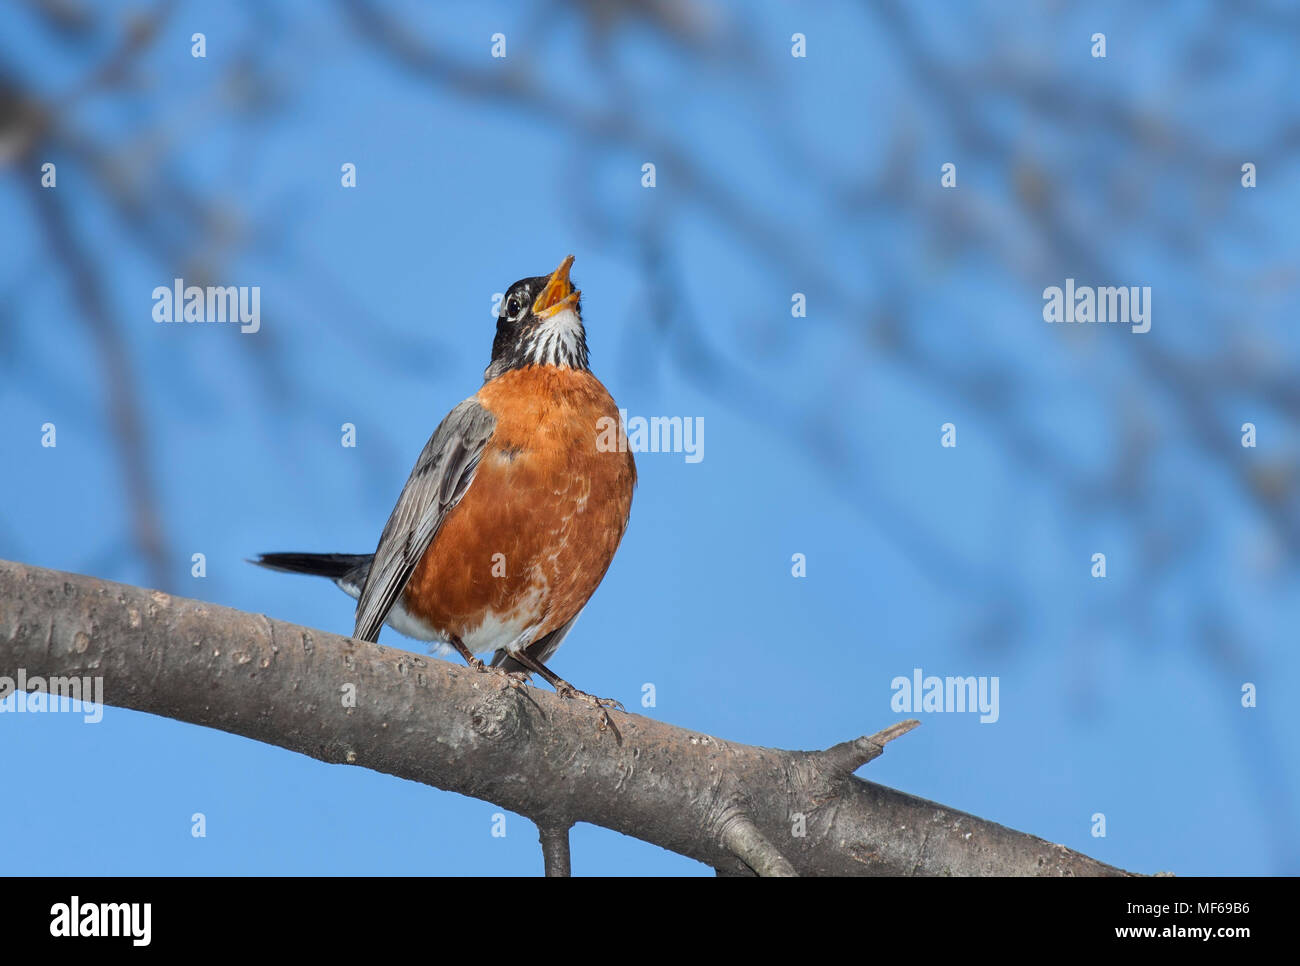 With its bright orange plumage in full display, tail up and beak wide open, a robin sings it cheerful song.  A bright blue sky and out of focus trees  - Stock Image